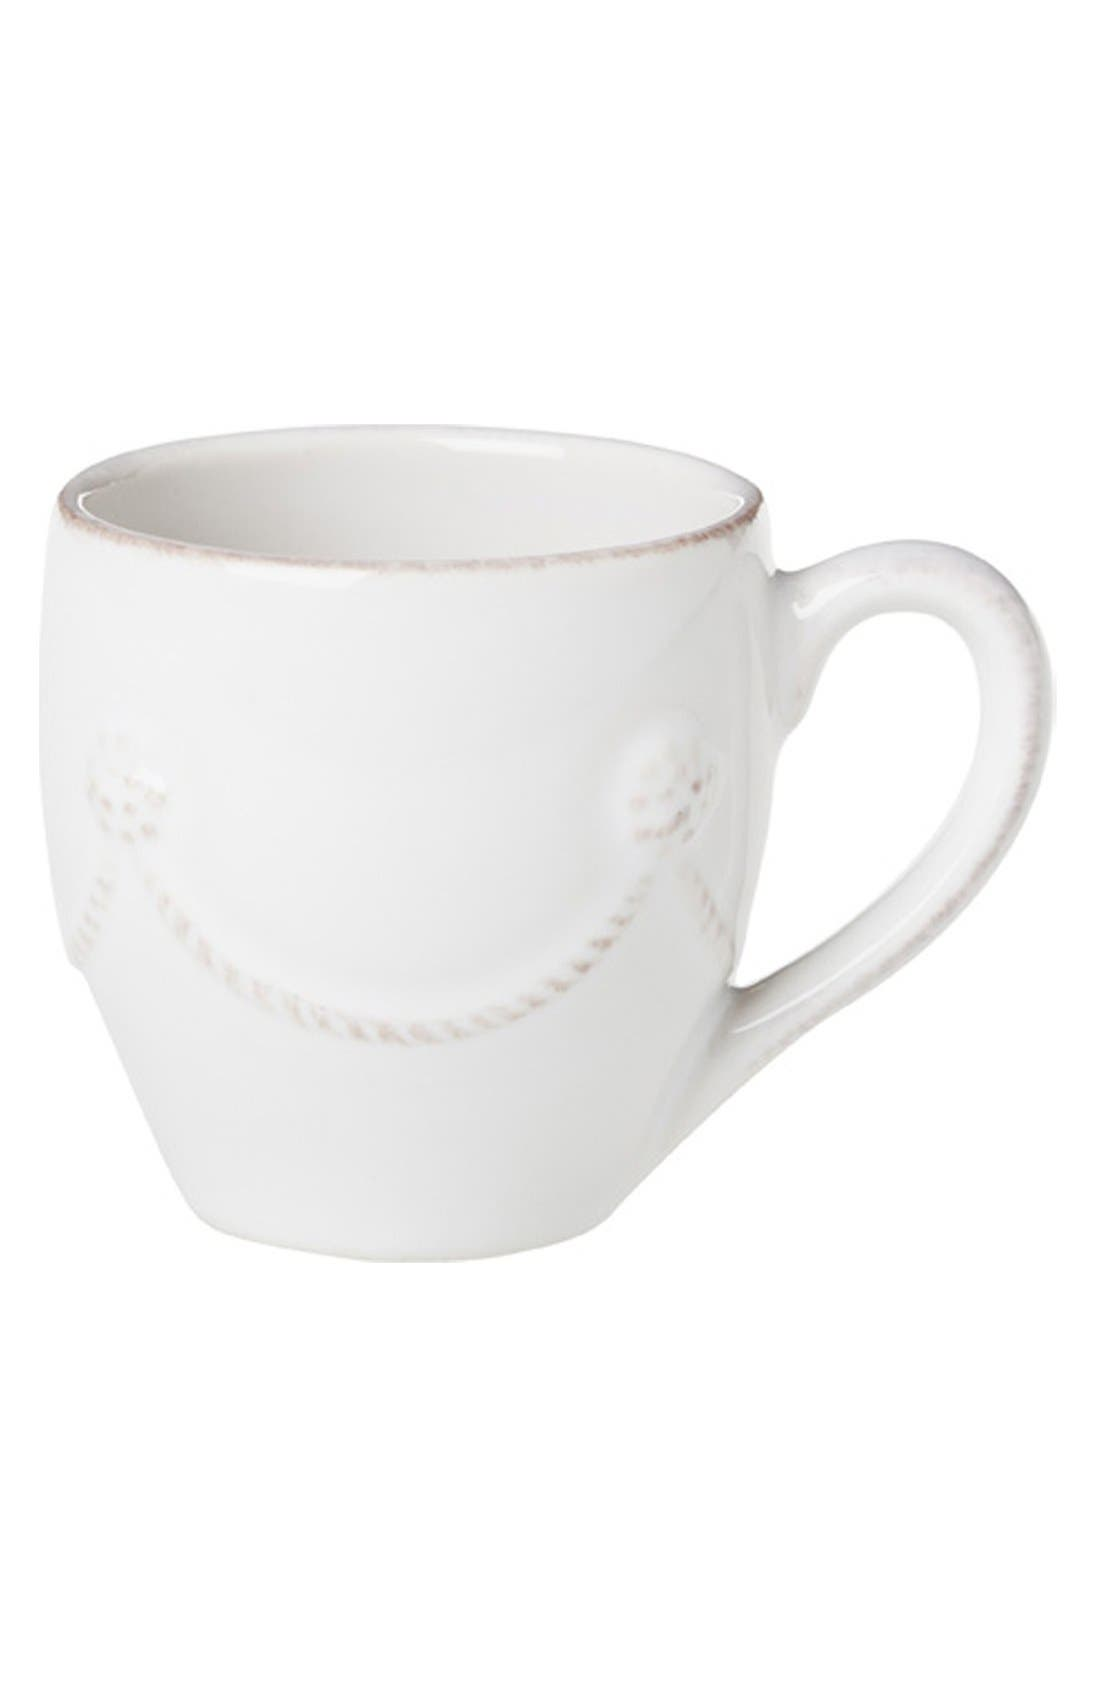 'Berry and Thread' Ceramic Demitasse Coffee Mug,                             Main thumbnail 1, color,                             100